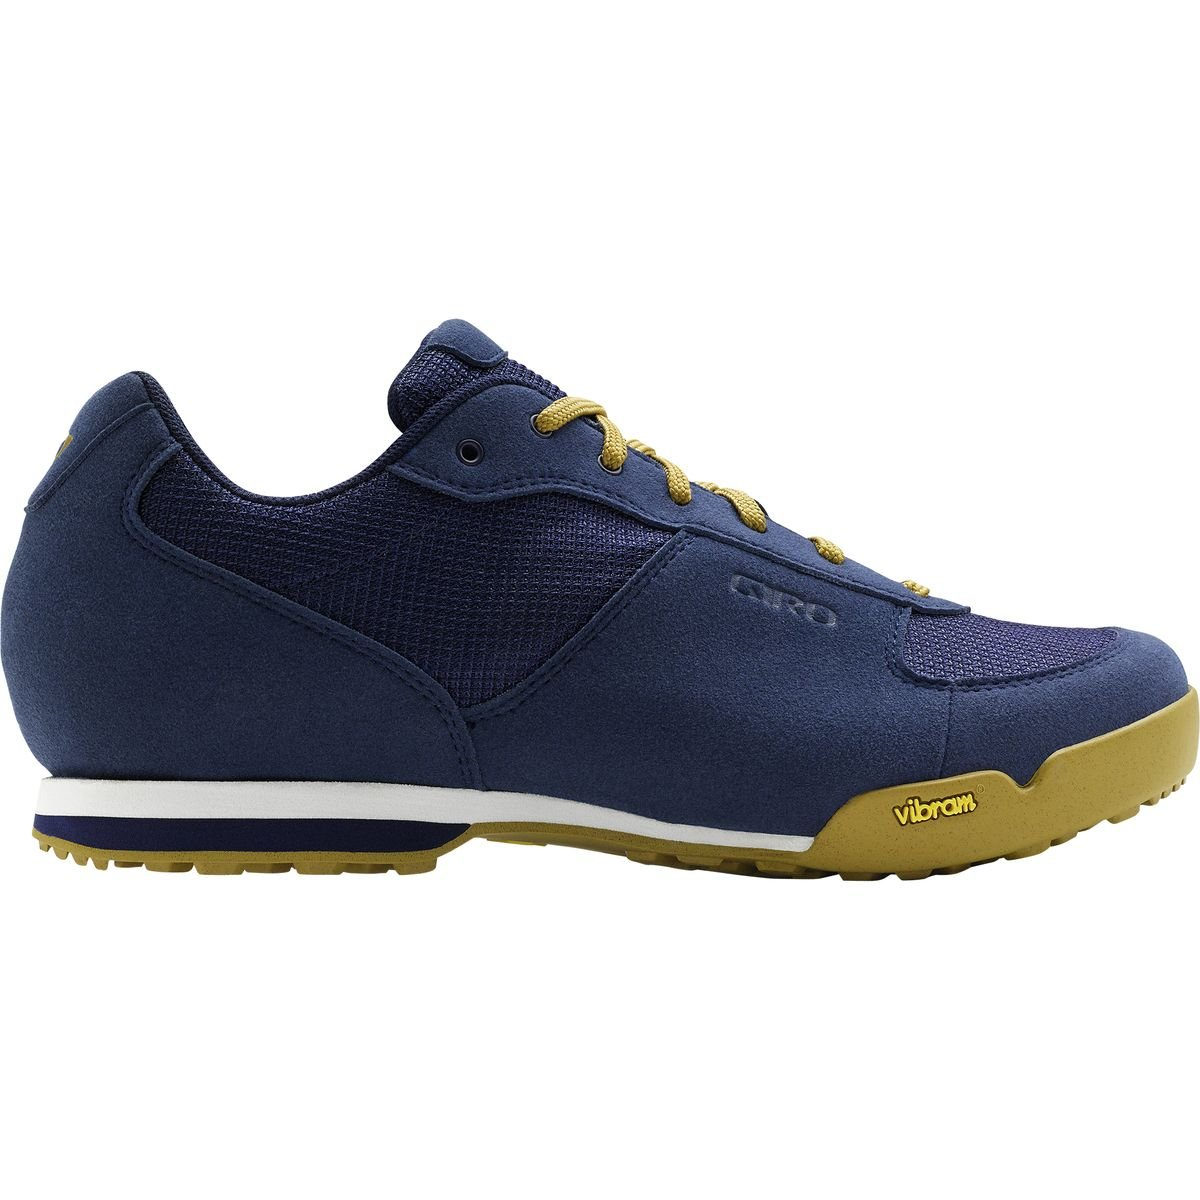 Giro Rumble Vr MTB Shoes Dress Blue/Gum 45 by Giro